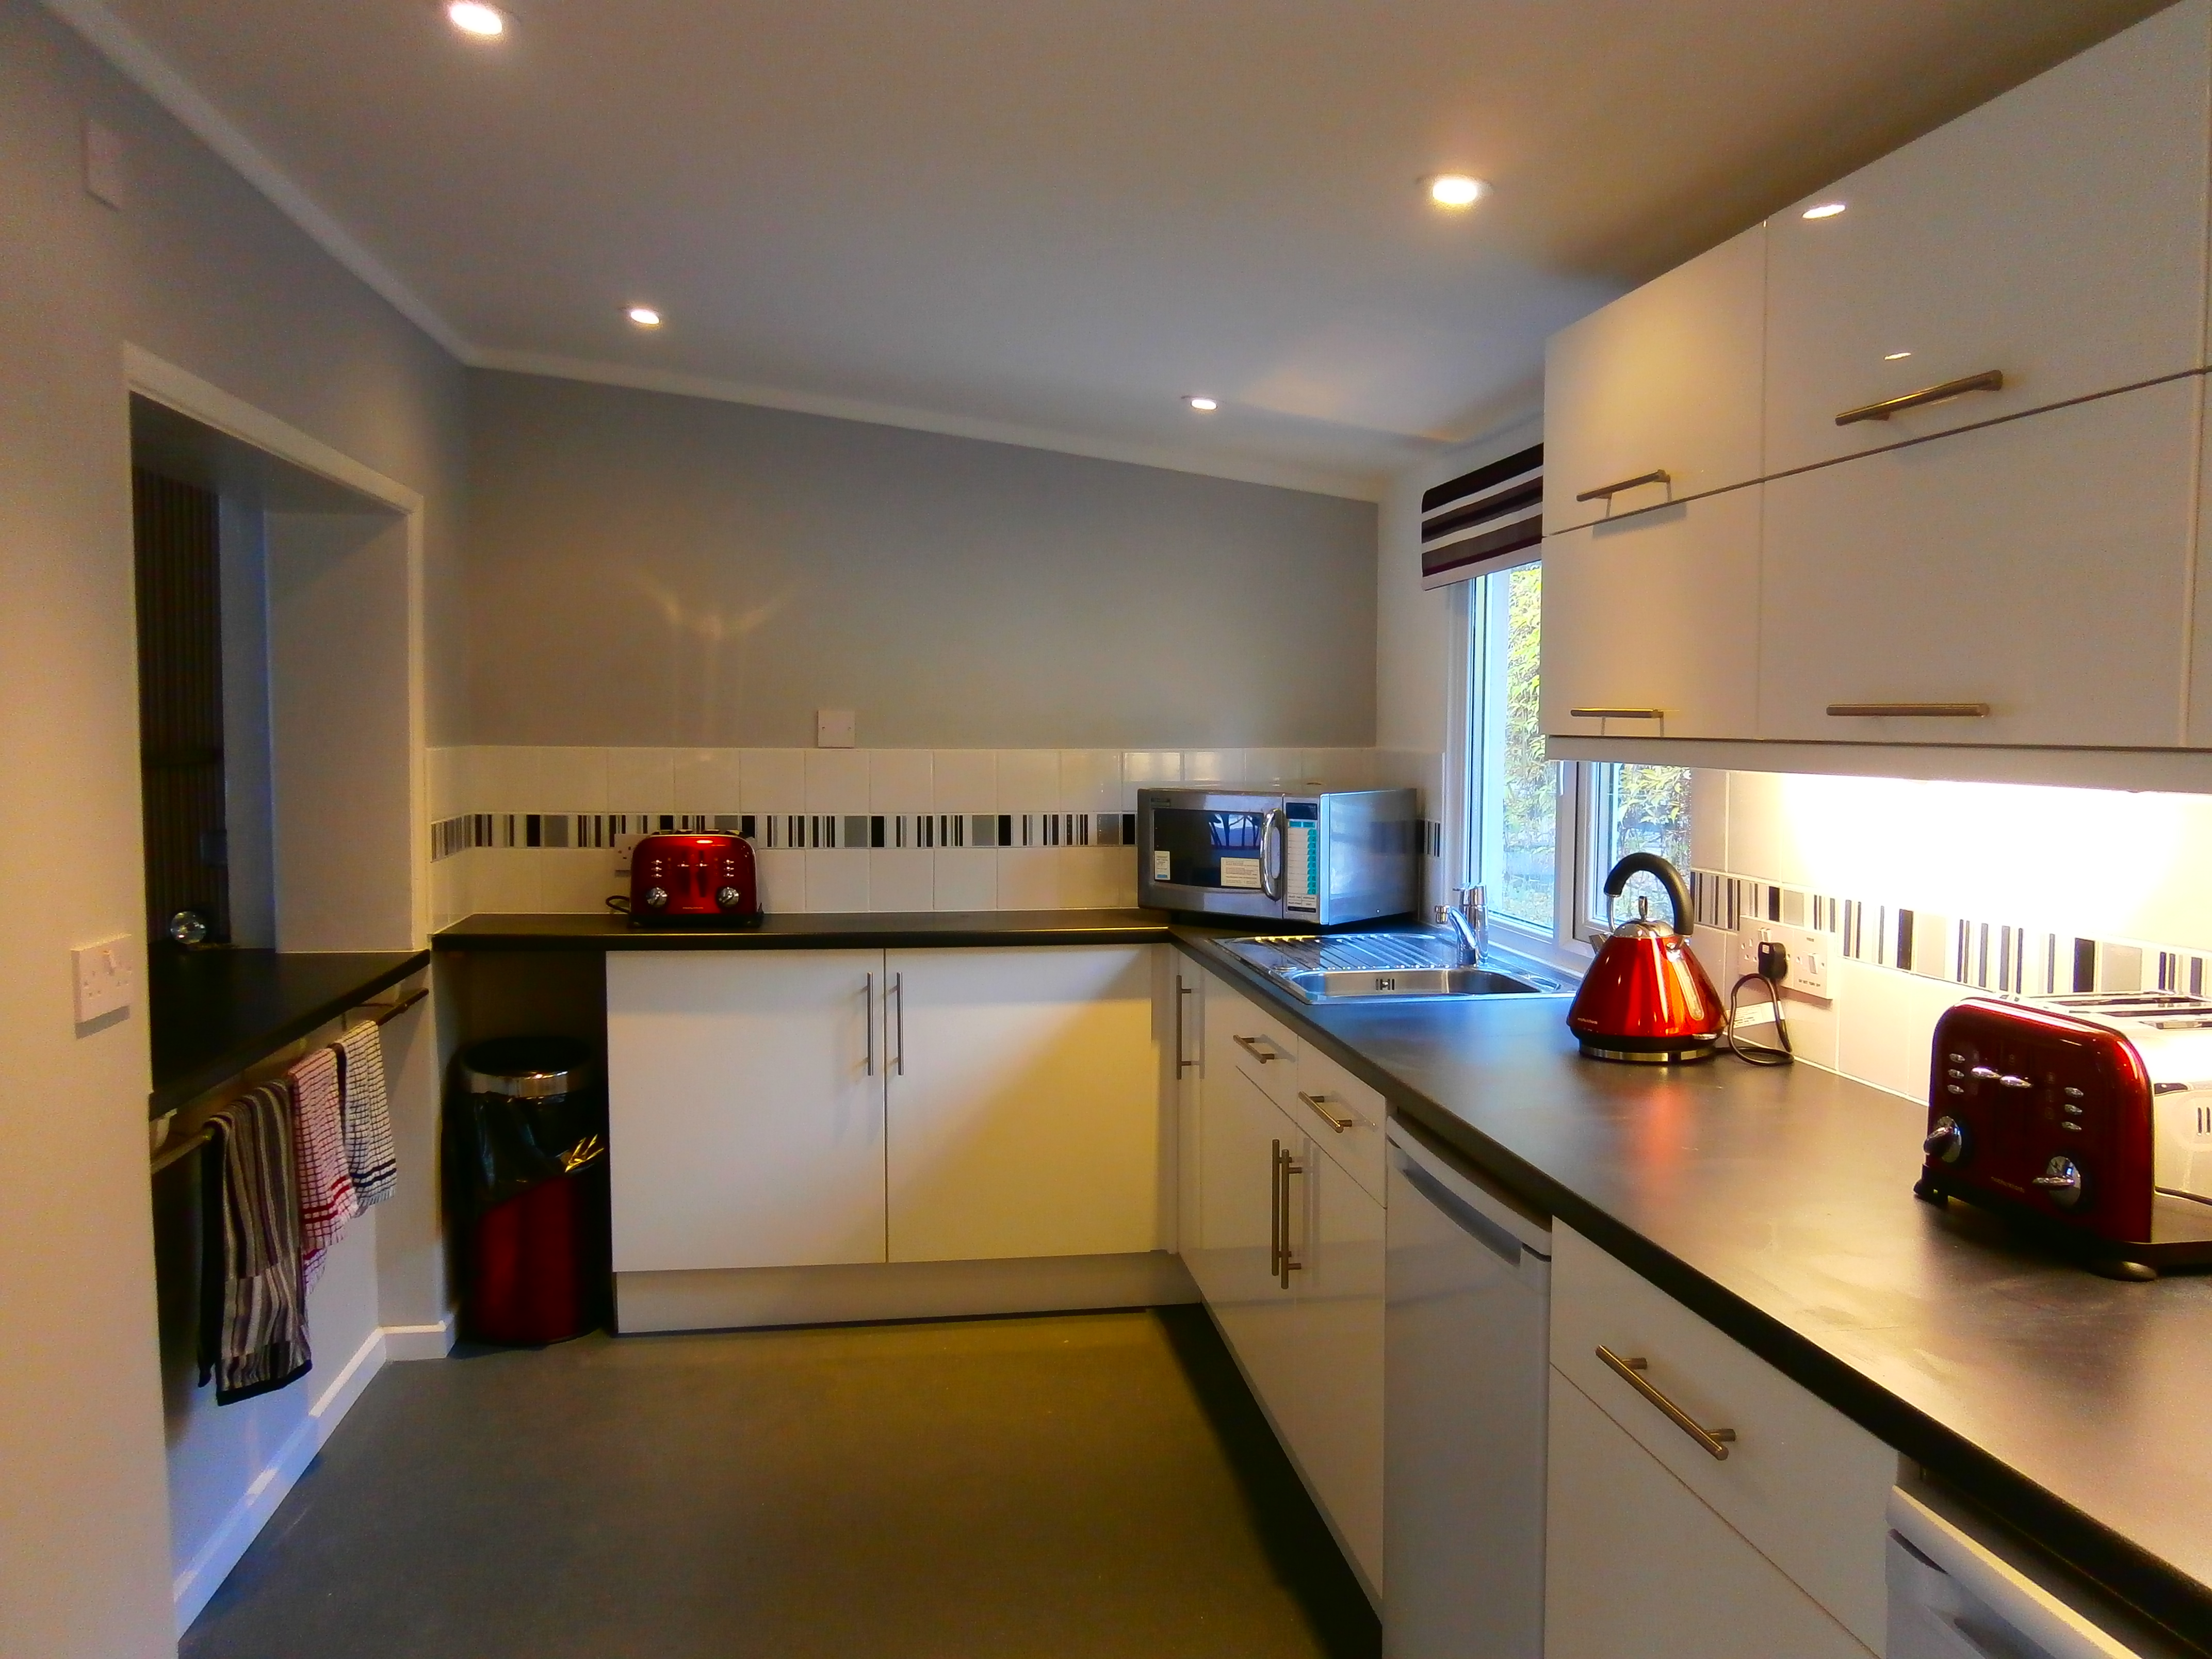 Refurbishment of old kitchen